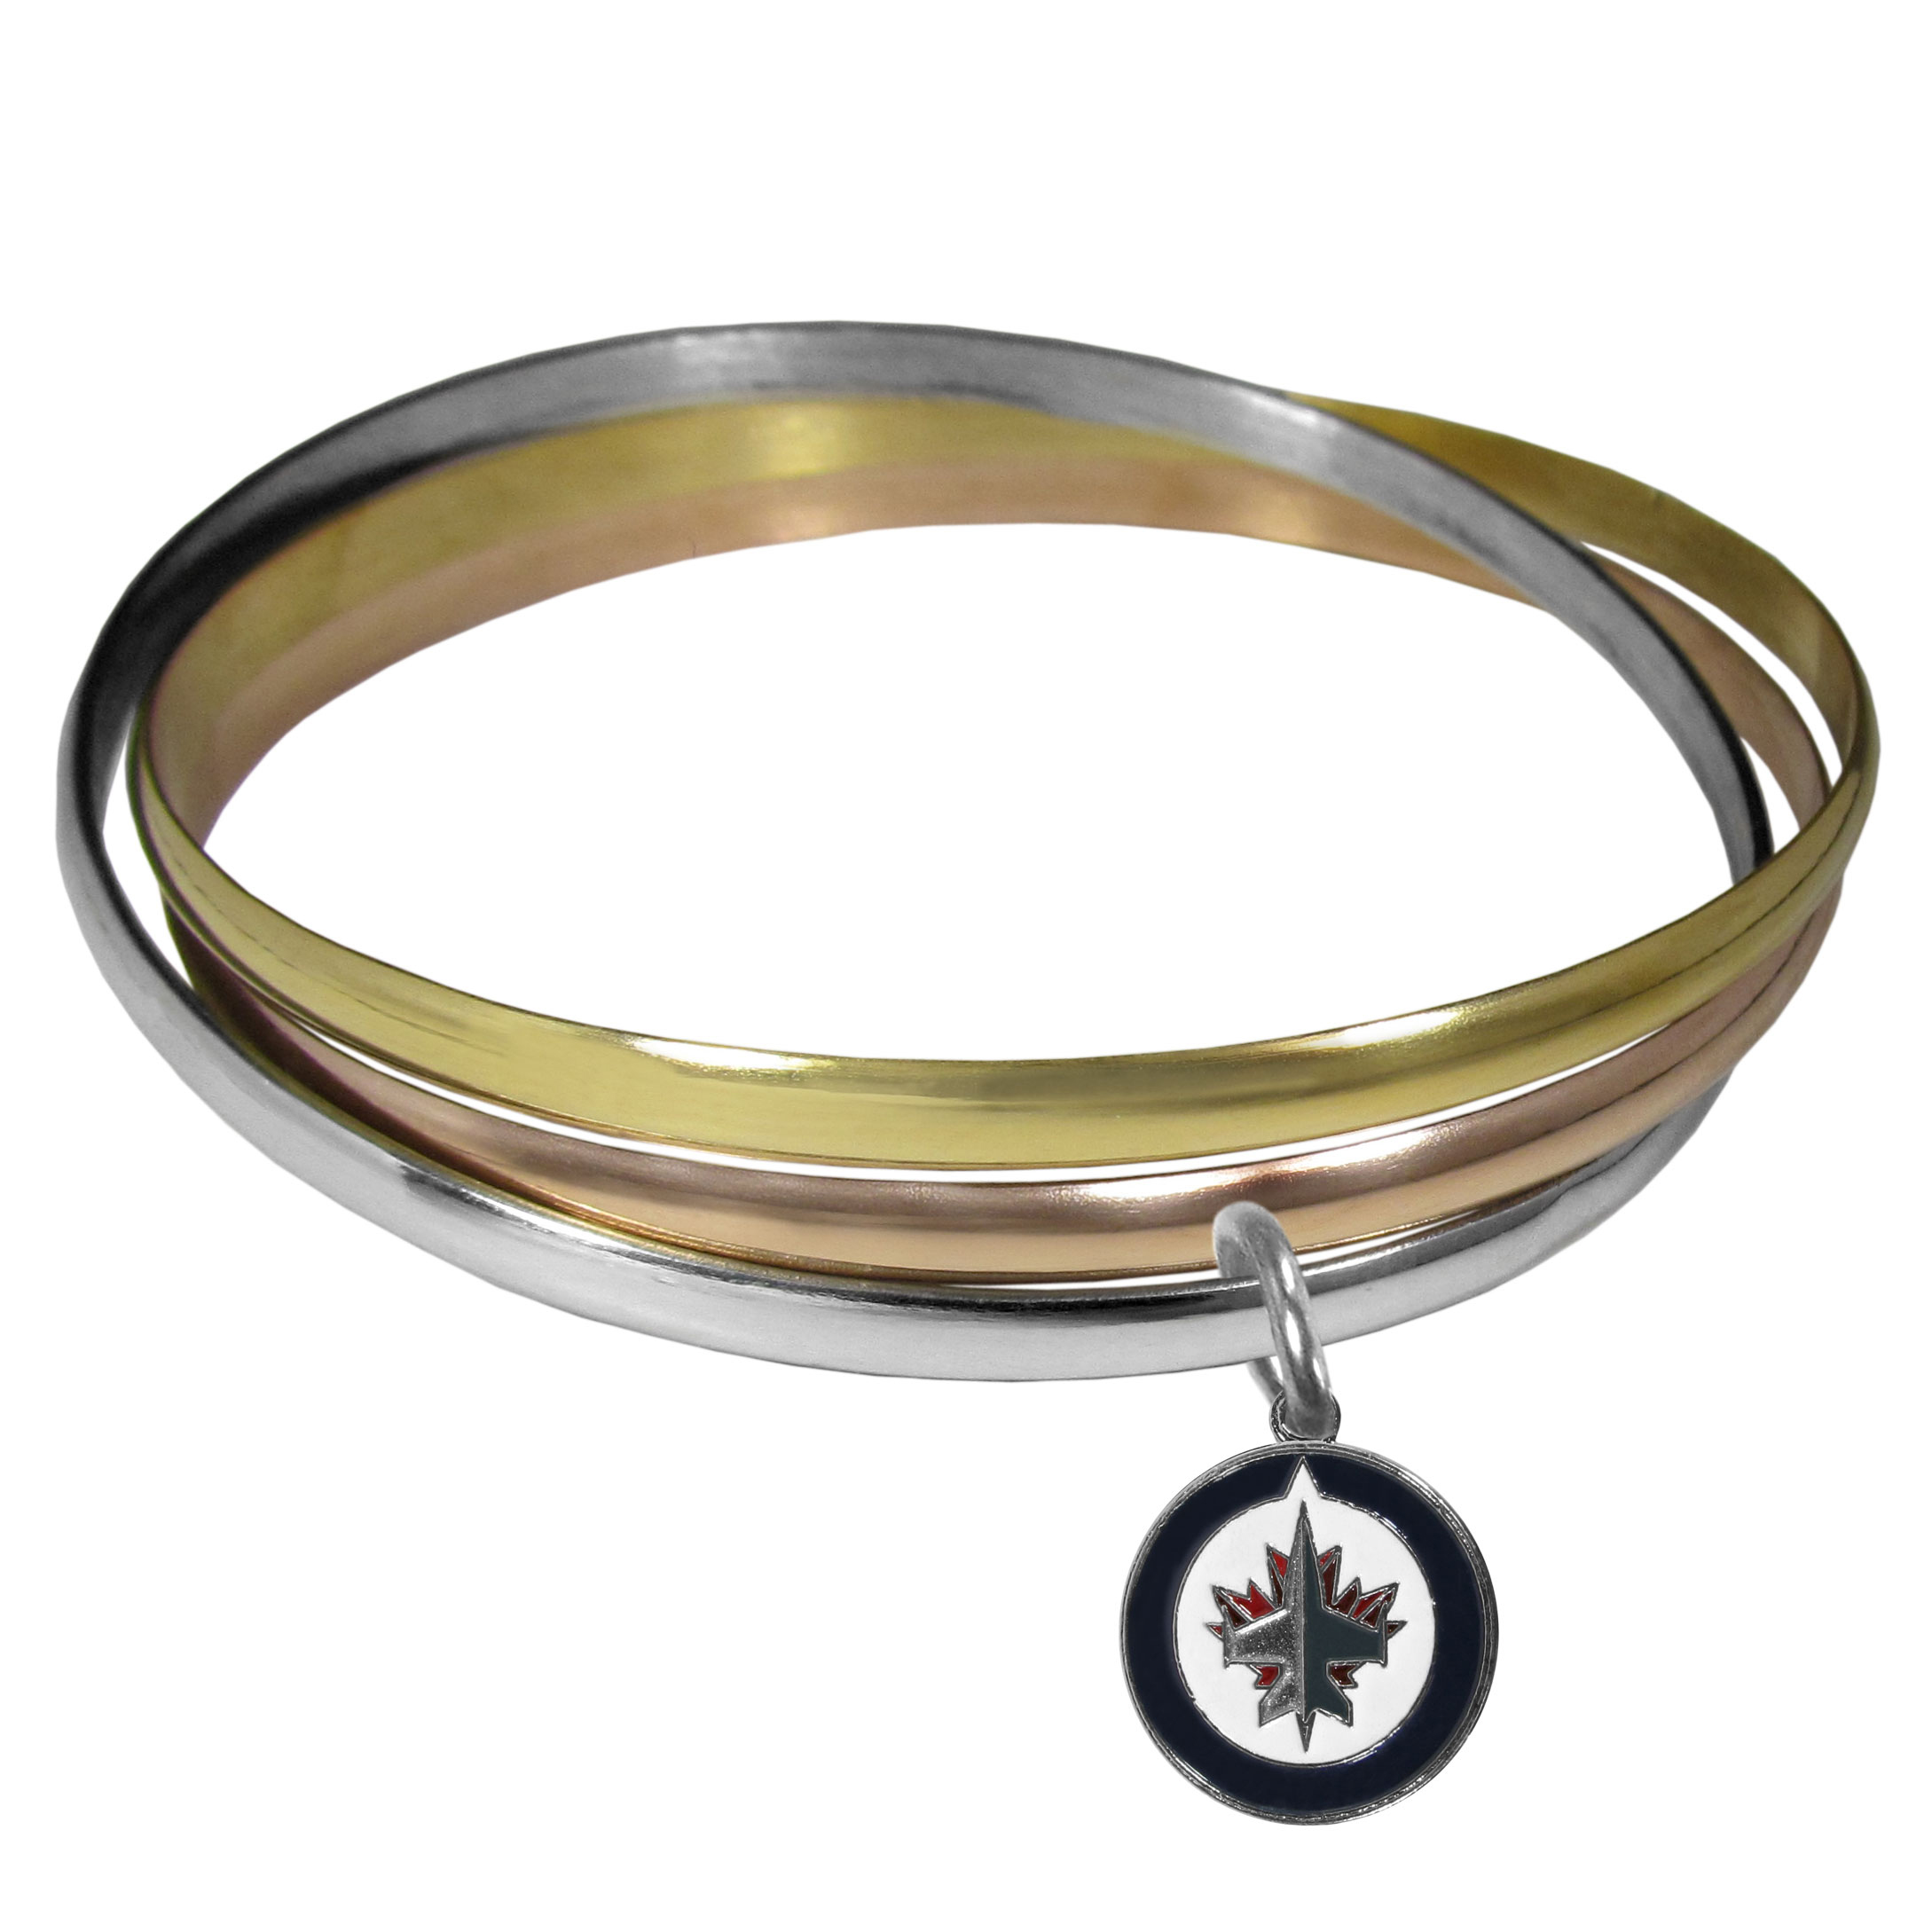 Winnipeg Jets Tri-color Bangle Bracelet - These beautiful bangles come in a interlocking style and feature a fully cast Winnipeg Jets? charm with enameled team colors. The bracelet has a silver toned bangle, gold tone bangle and brass toned bangle.